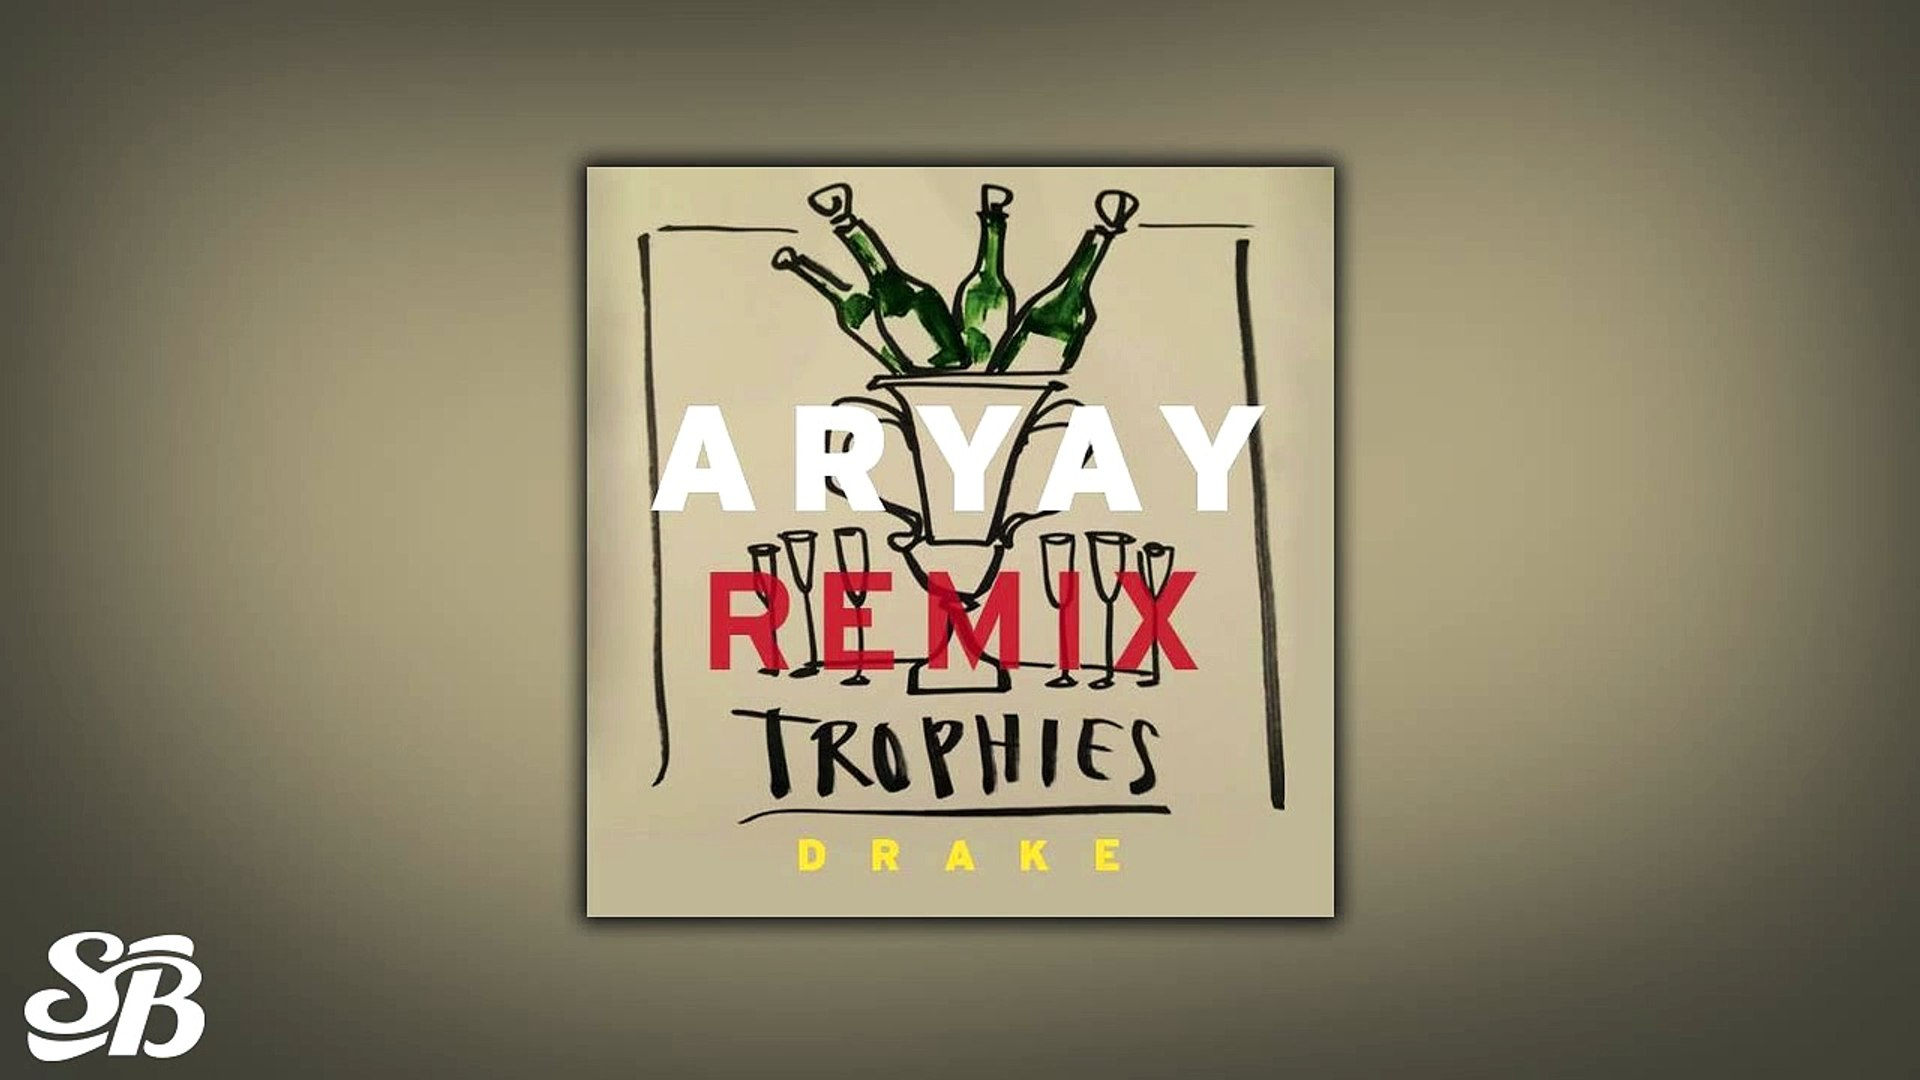 trophies aryay trap remix